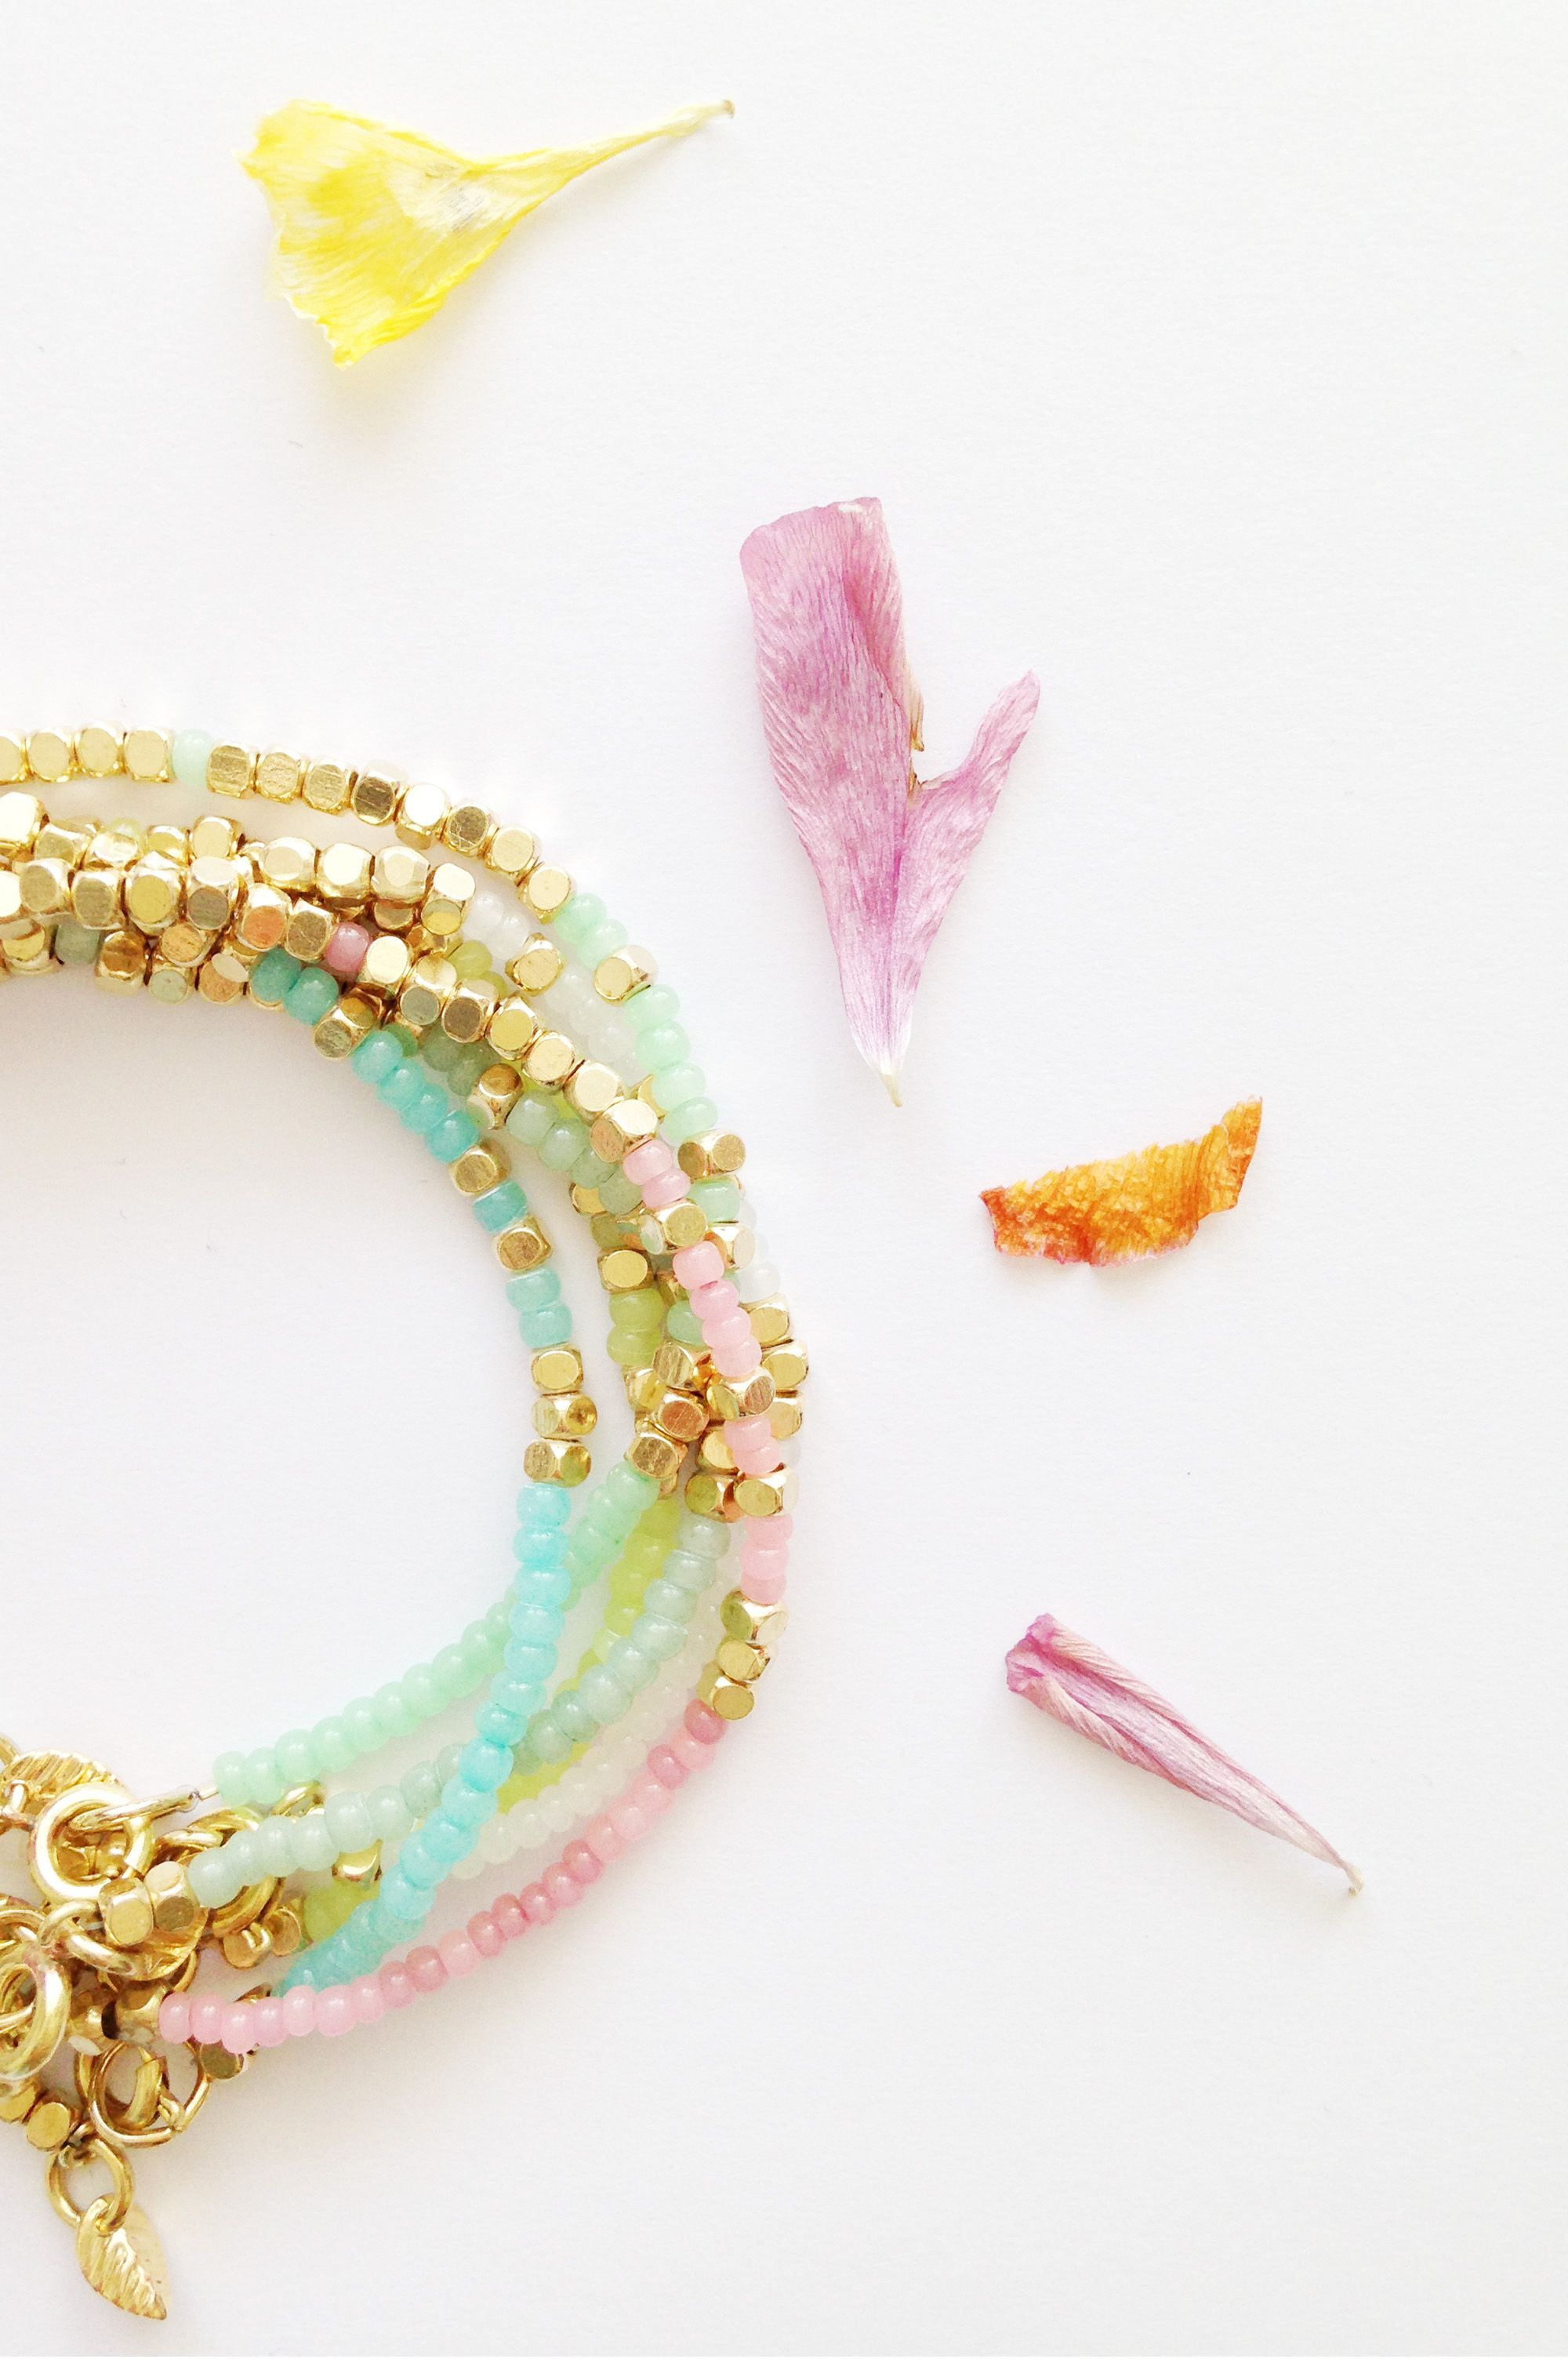 CORAIL MENTHE - www.corailmenthe.com Pastel beads and brass bracelet